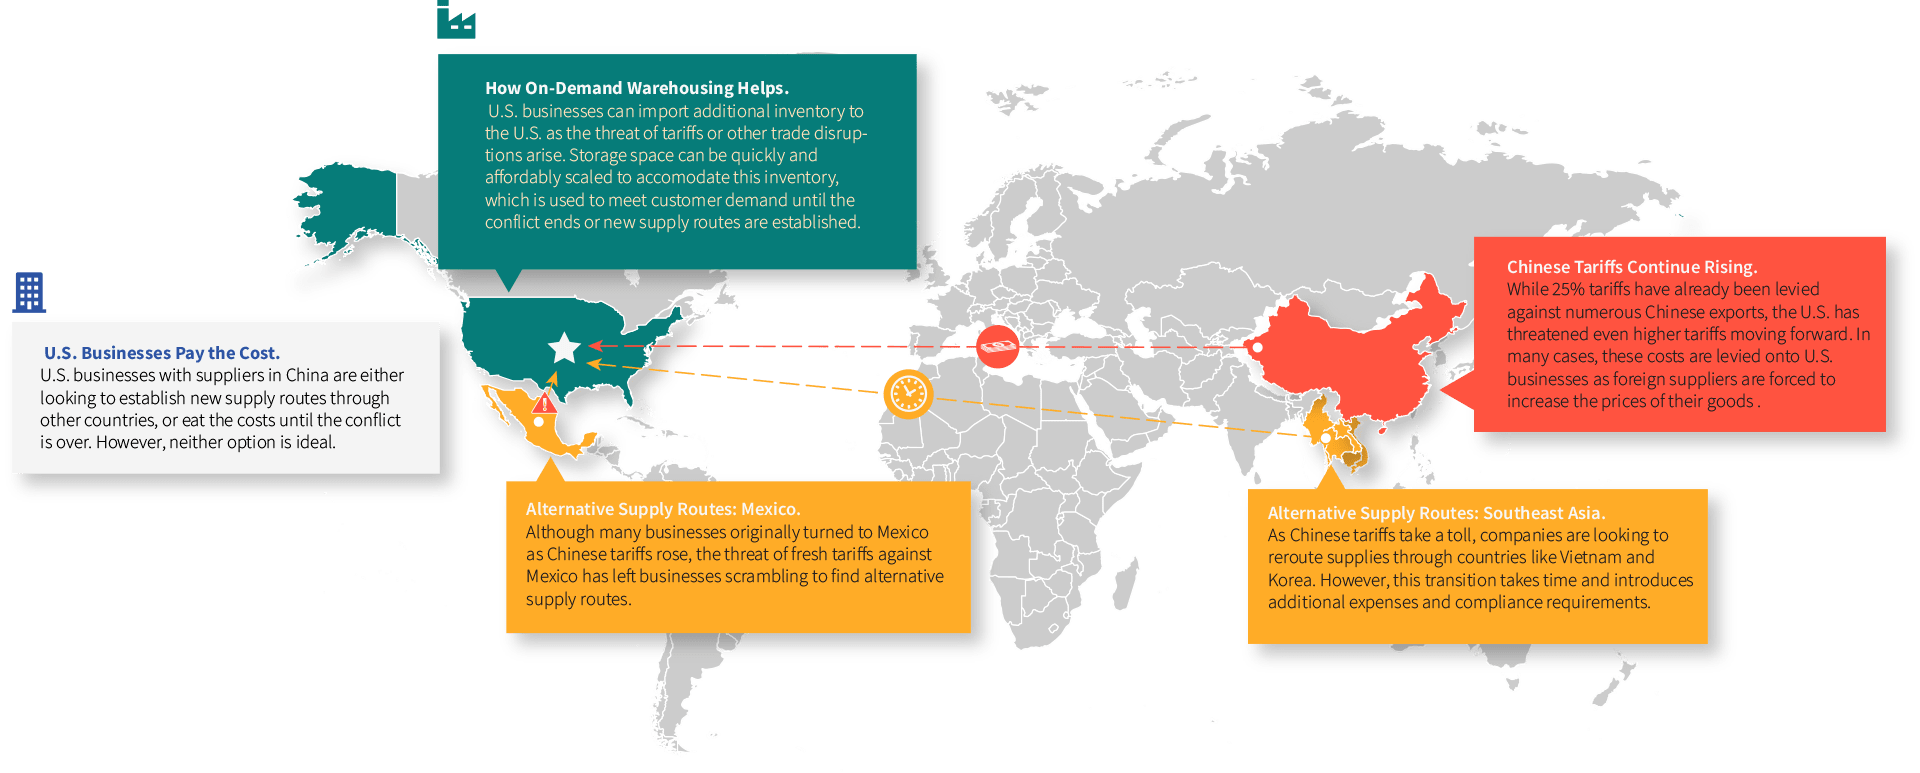 A global picture of how trade conflict is impacting U.S. supply chains